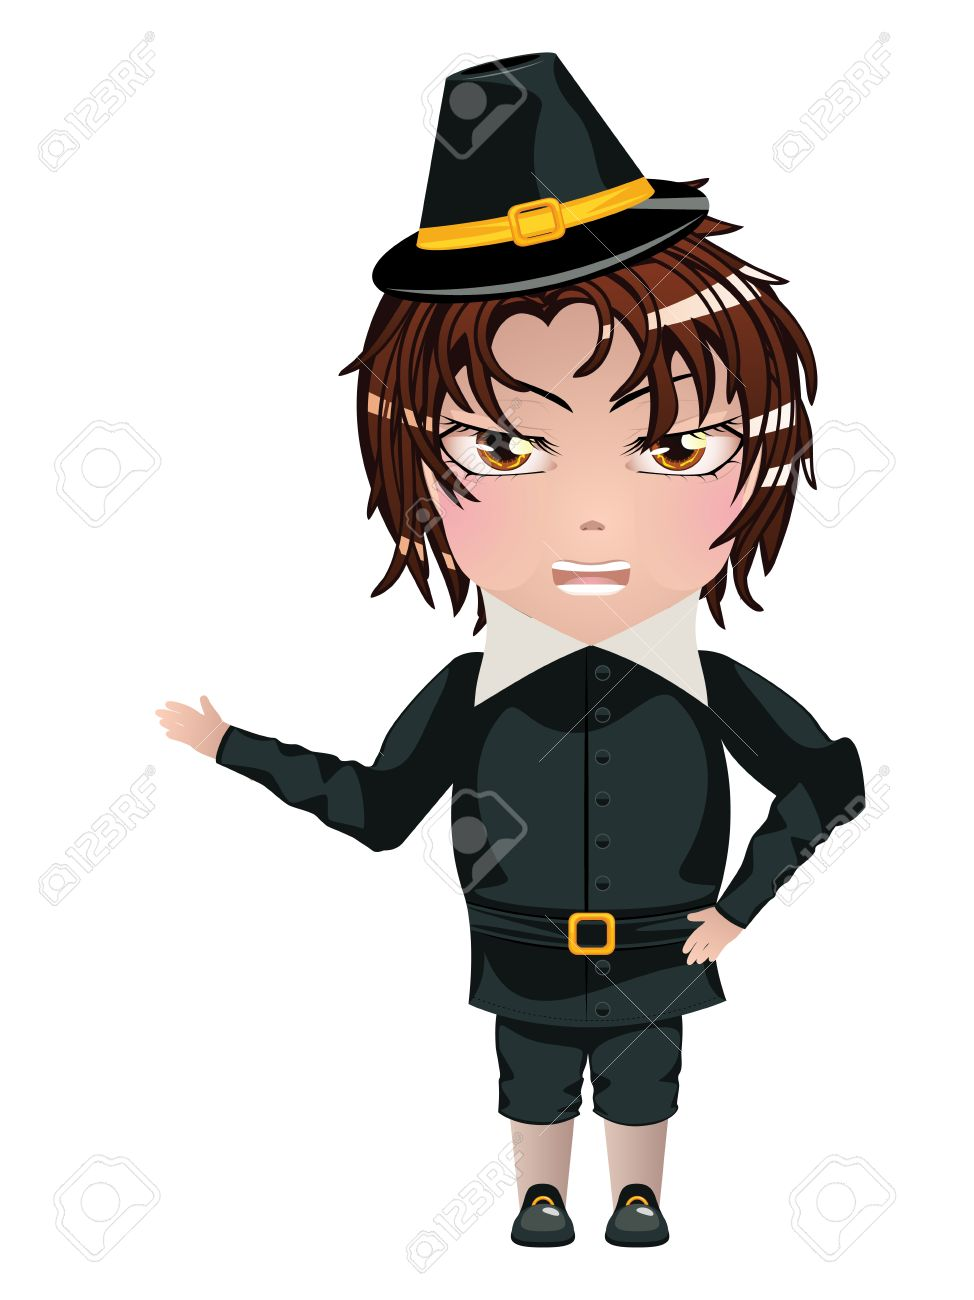 Illustration of a cartoon boy dressed in a pilgrim costume. Stock Vector - 34203182  sc 1 st  123RF.com & Illustration Of A Cartoon Boy Dressed In A Pilgrim Costume. Royalty ...